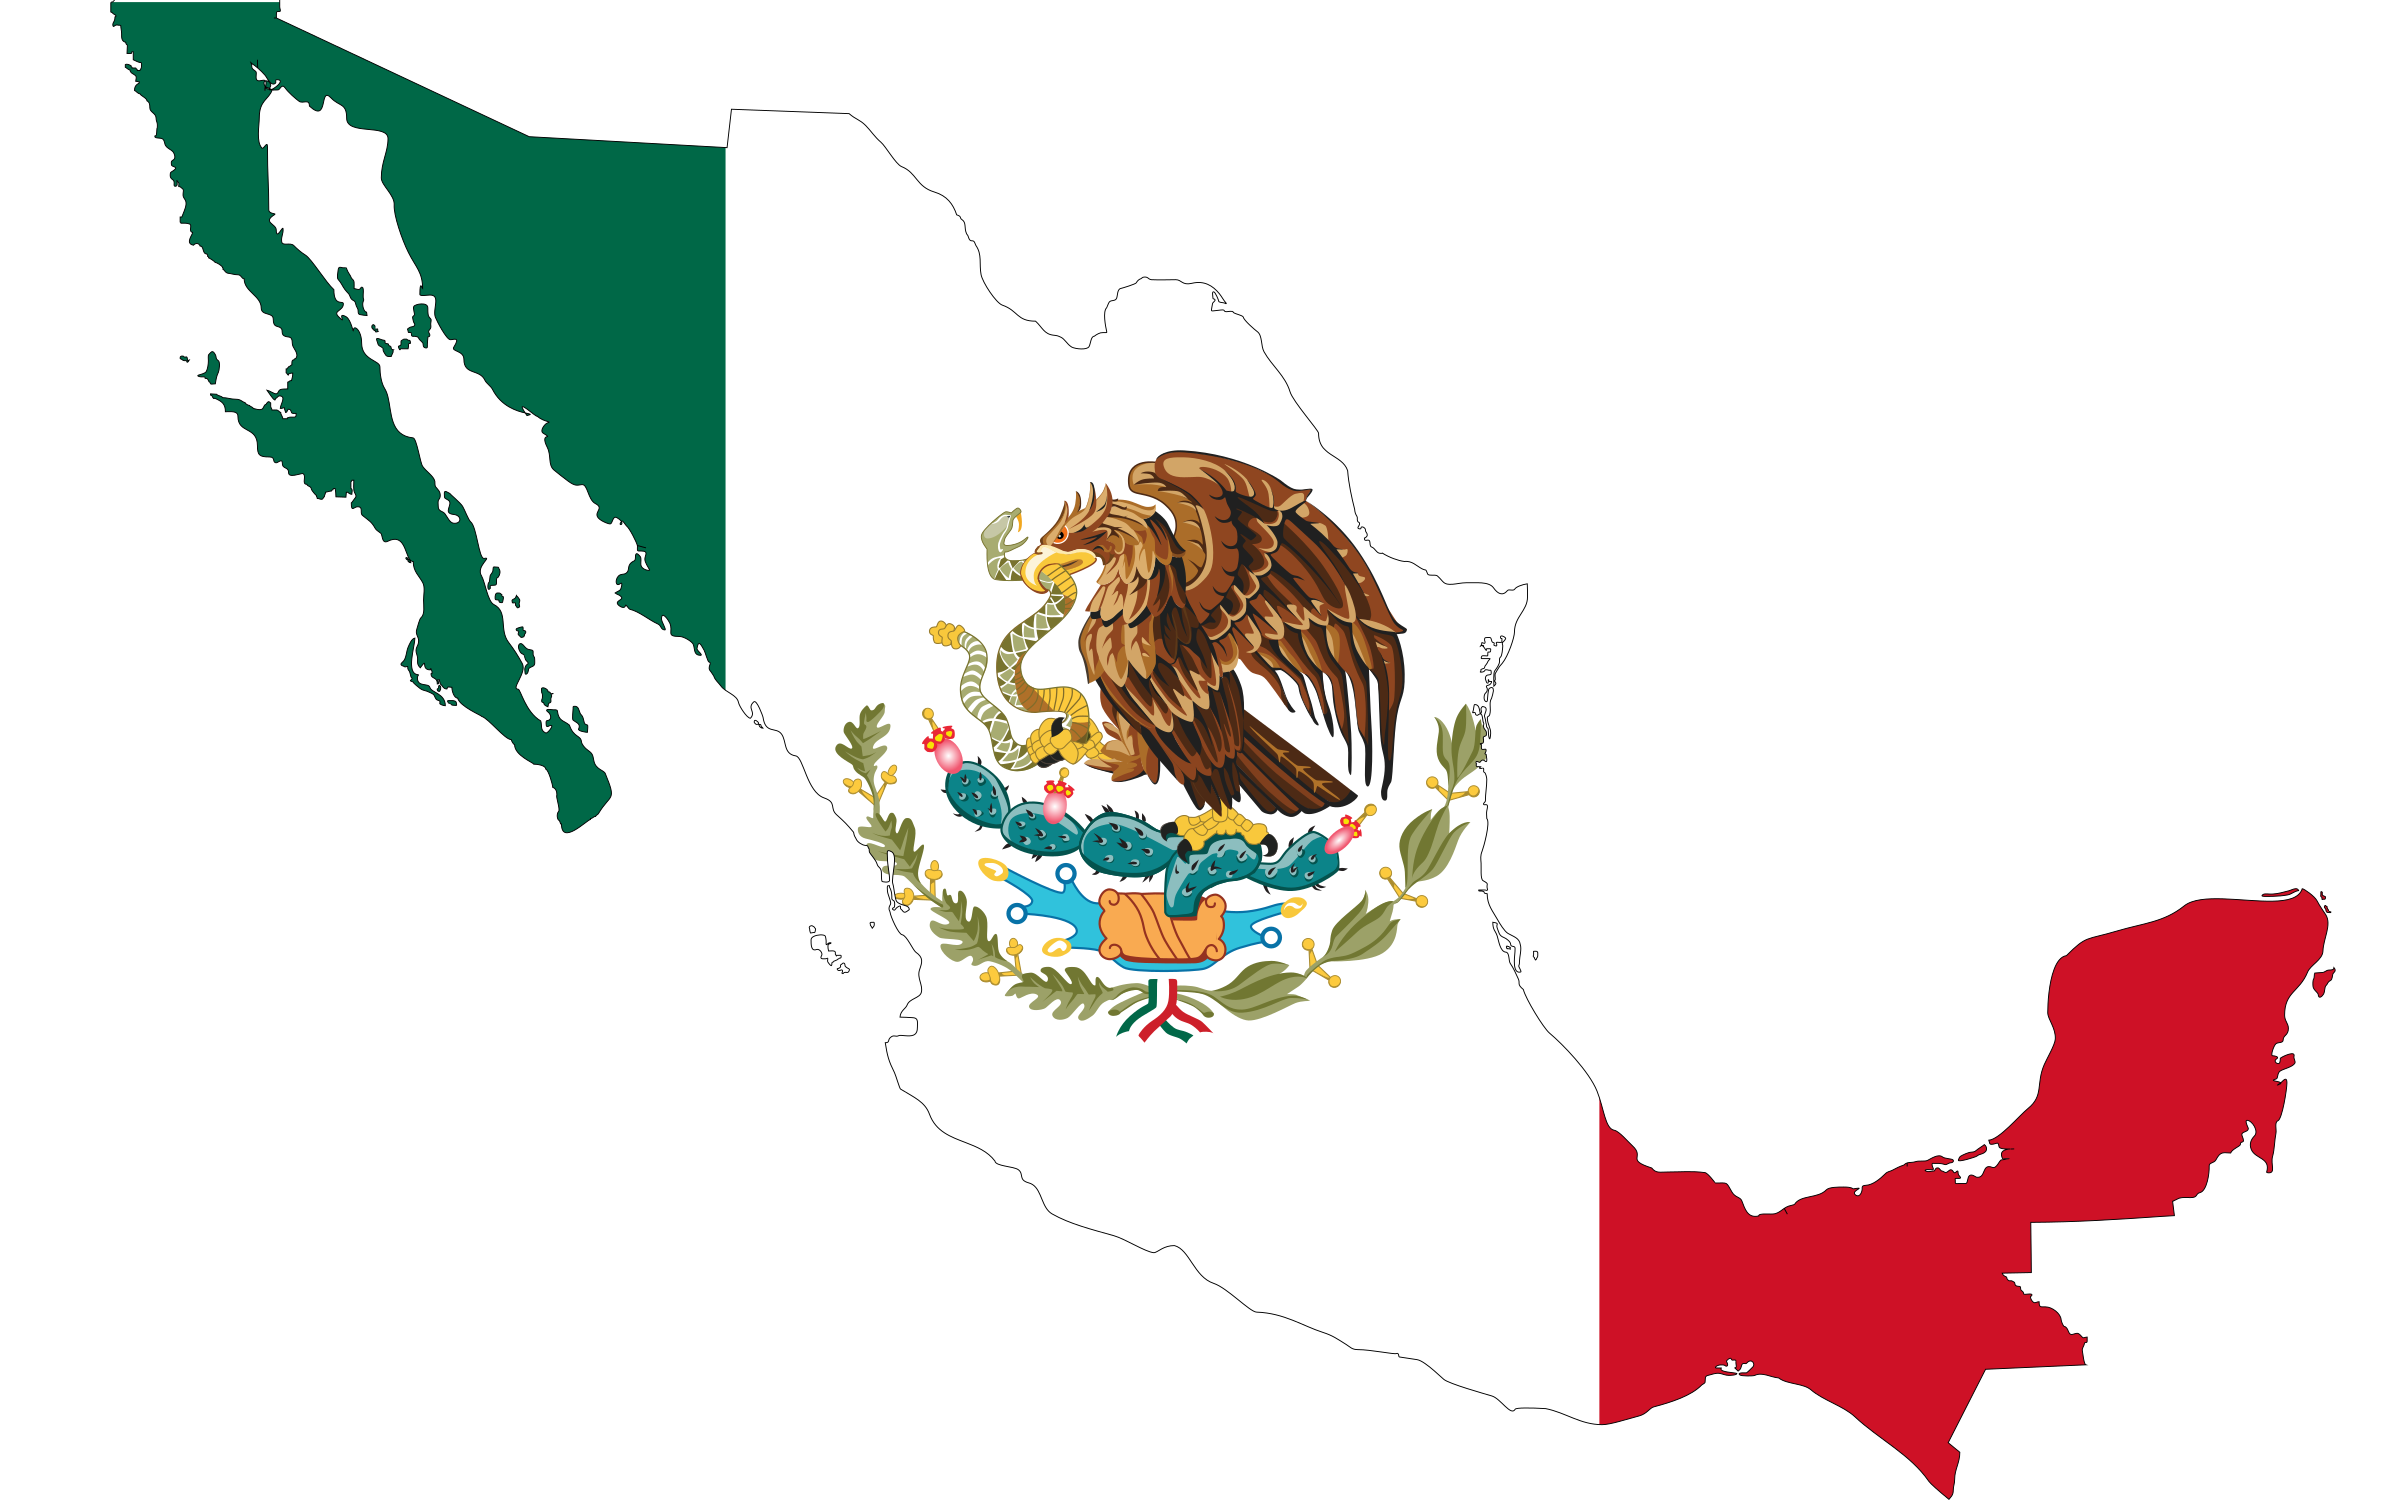 México png outline. Mexico flag map icons